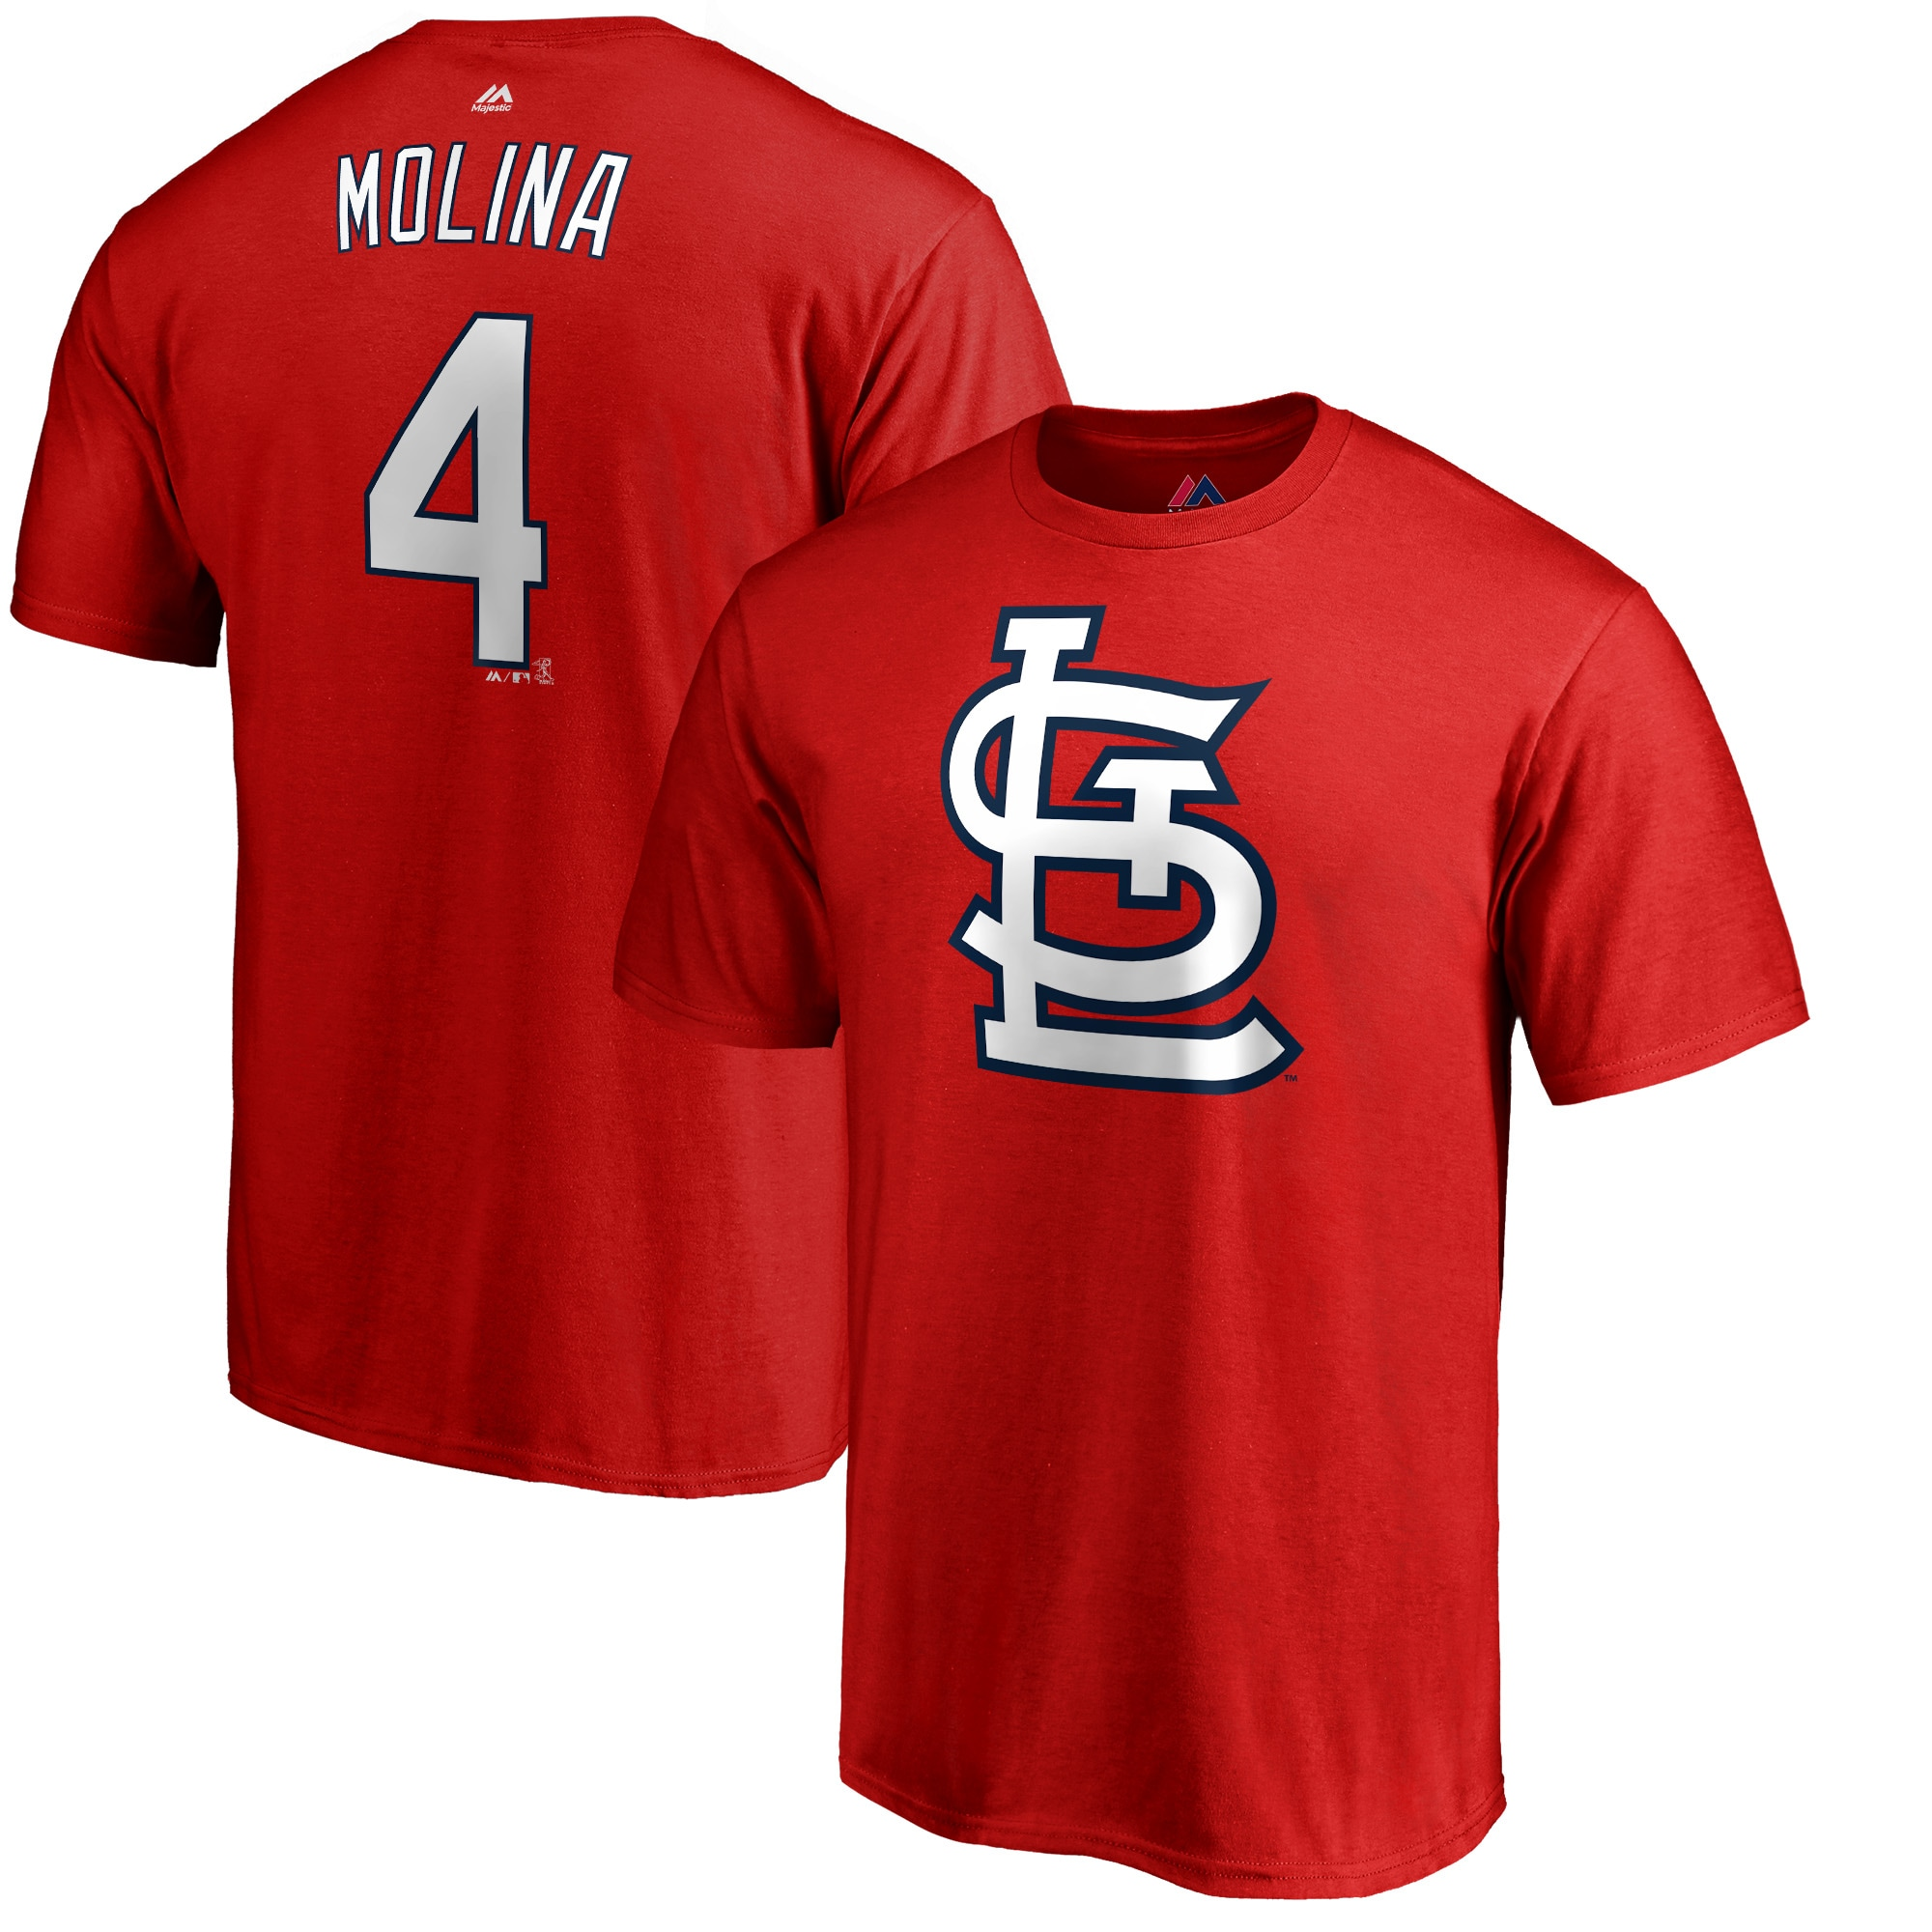 Yadier Molina St. Louis Cardinals Majestic Double Play Cap Logo Name & Number T-Shirt - Red